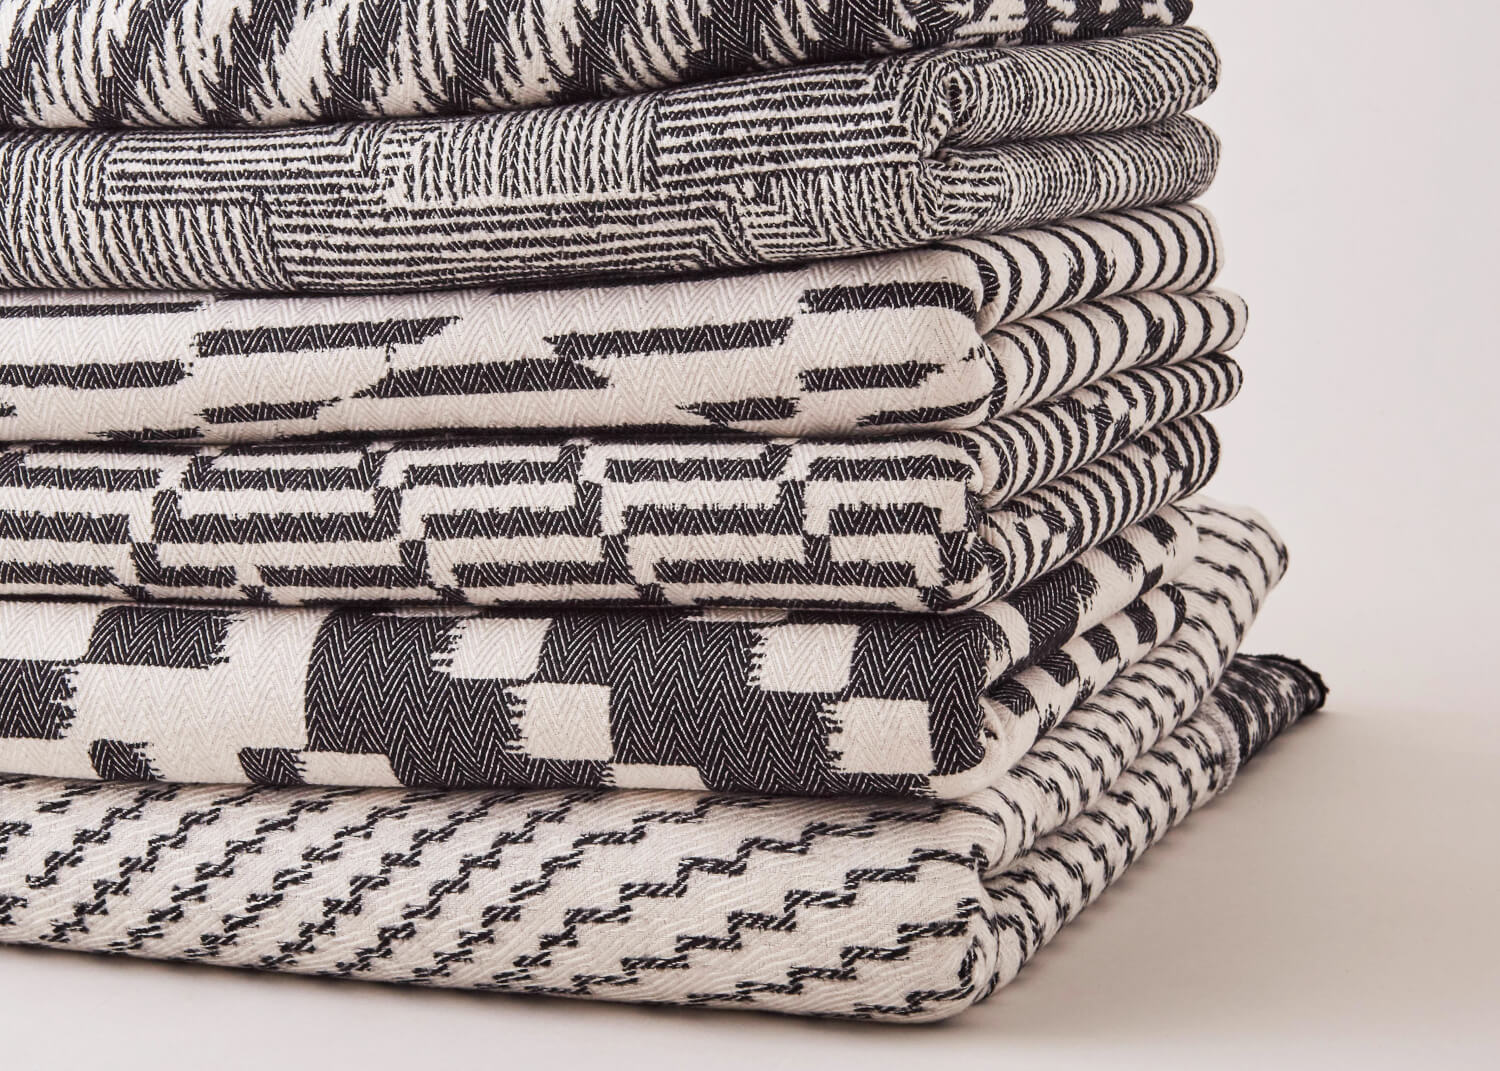 Beatrice Larkin Stack of Monochrome Throws in Gorgeous Graphic Patterns